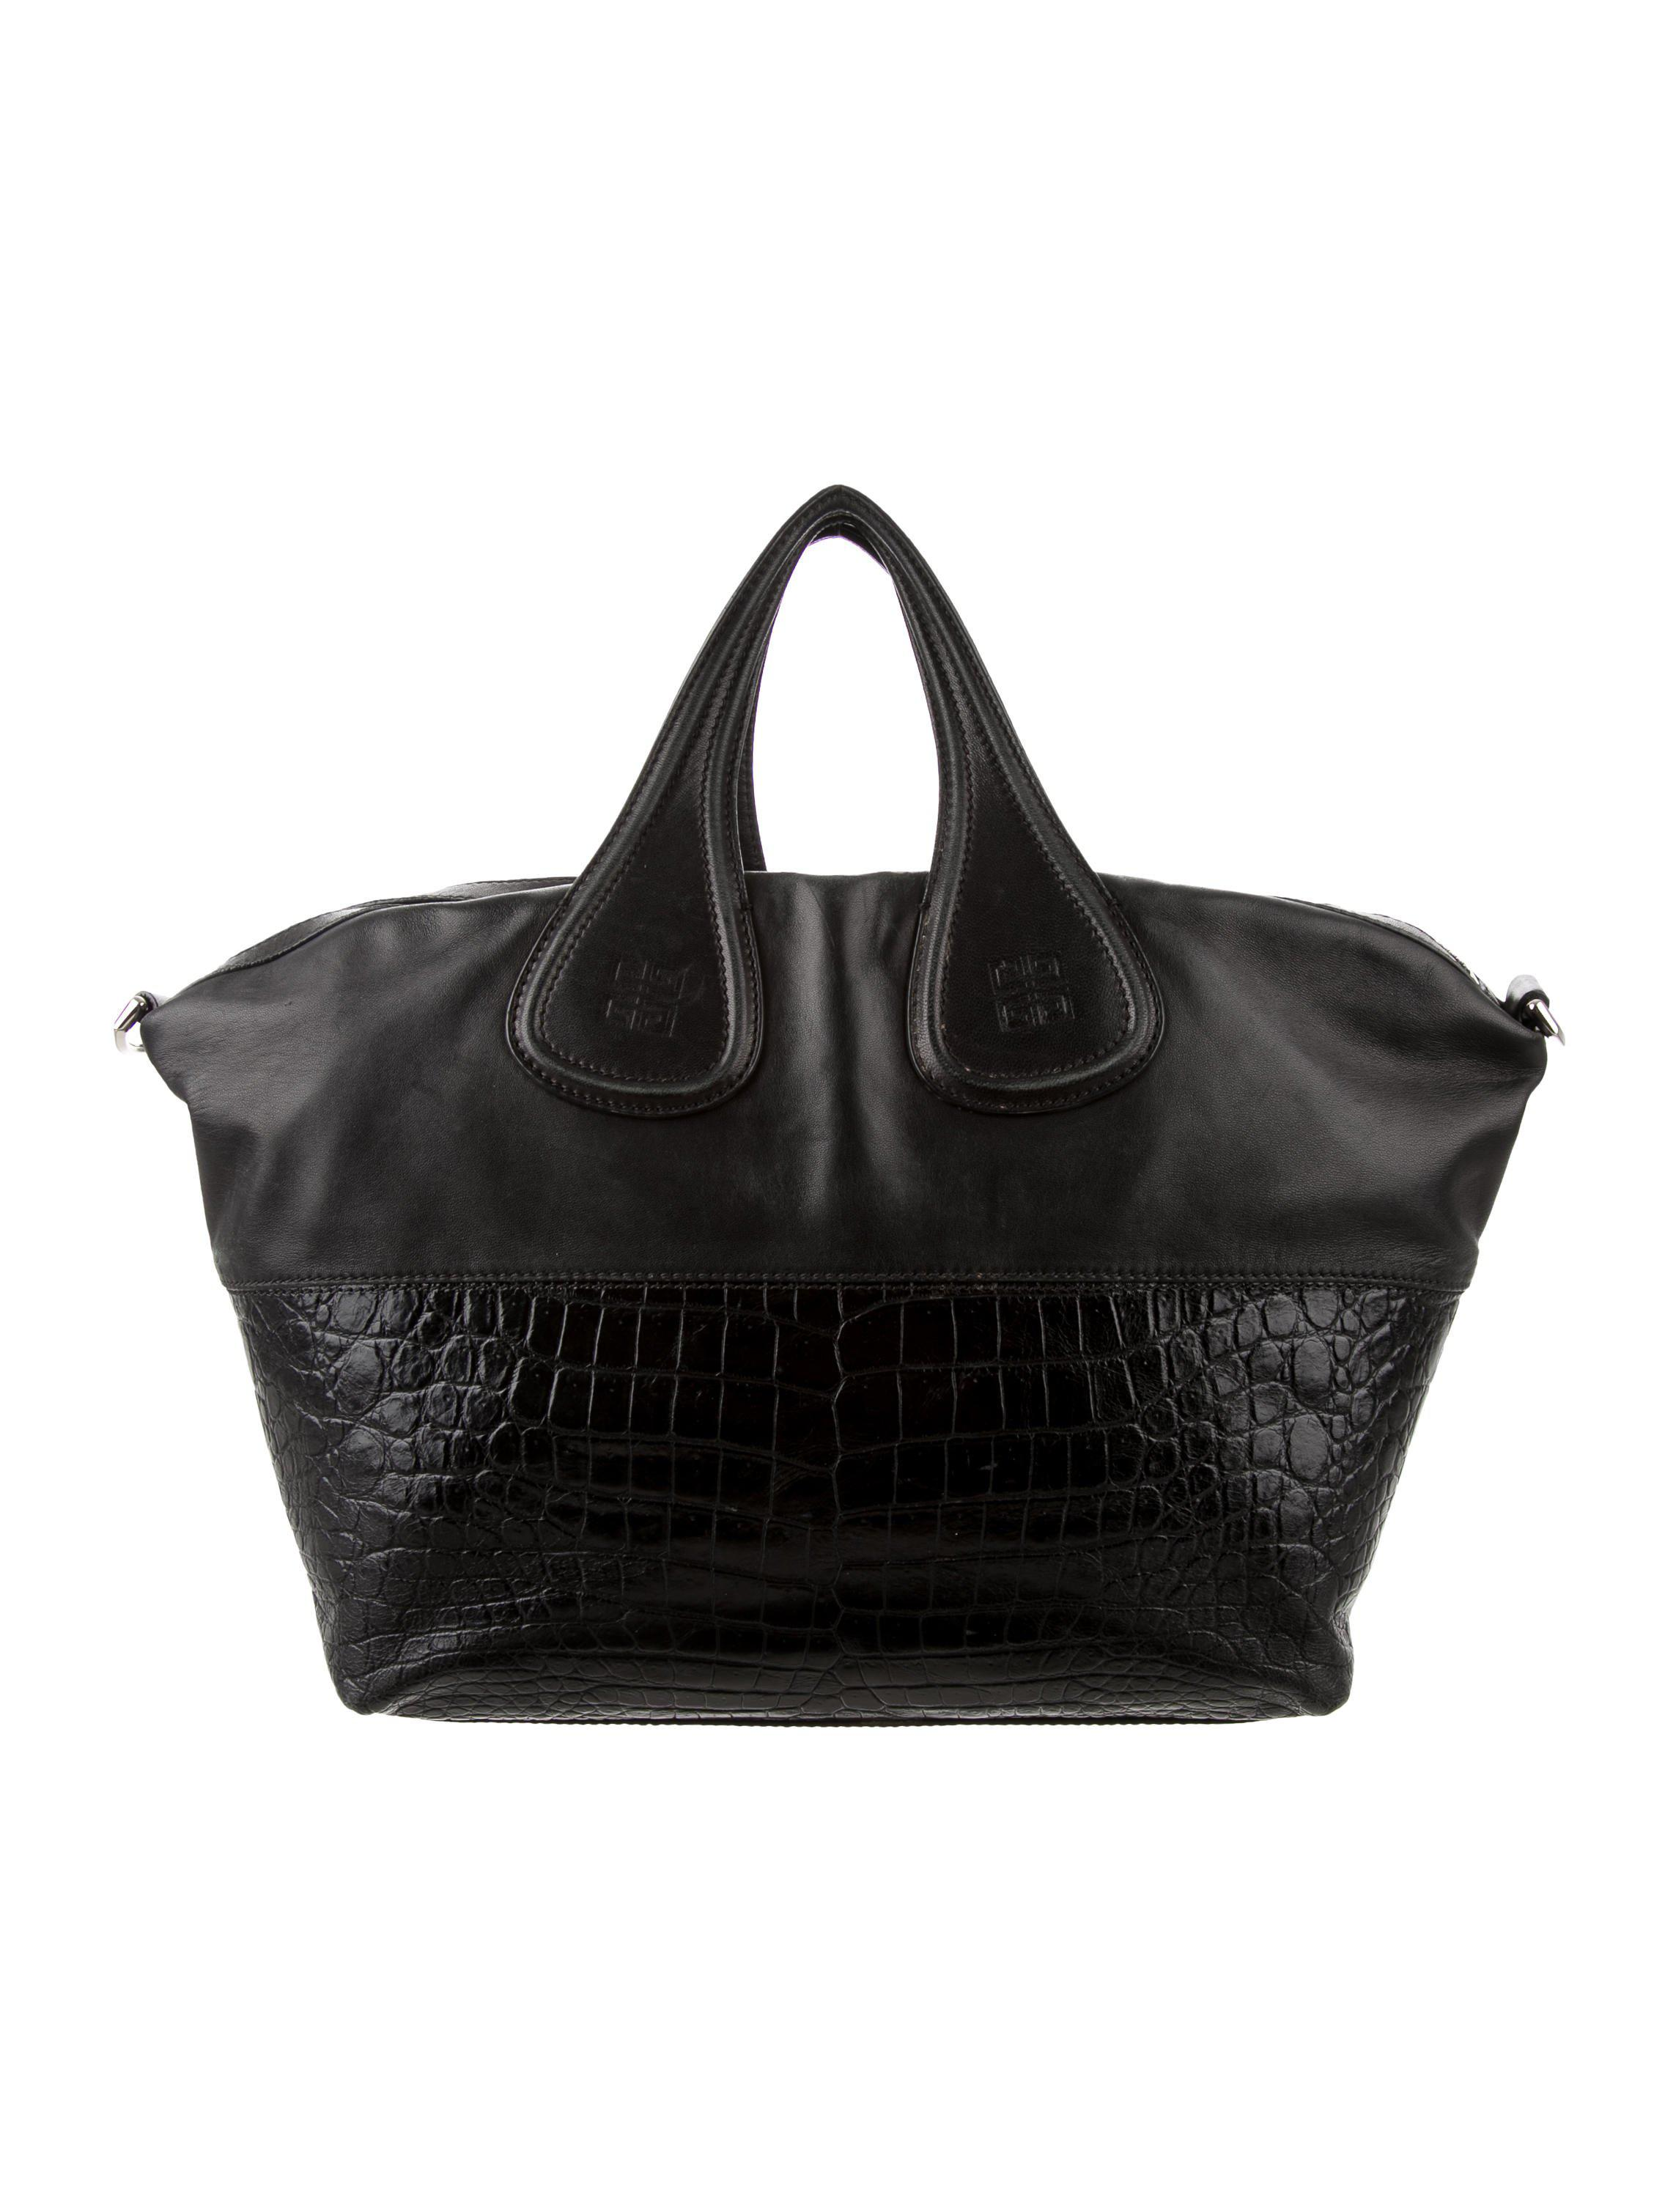 Lyst - Givenchy Medium Nightingale Bag Black in Metallic 317623a50fb26